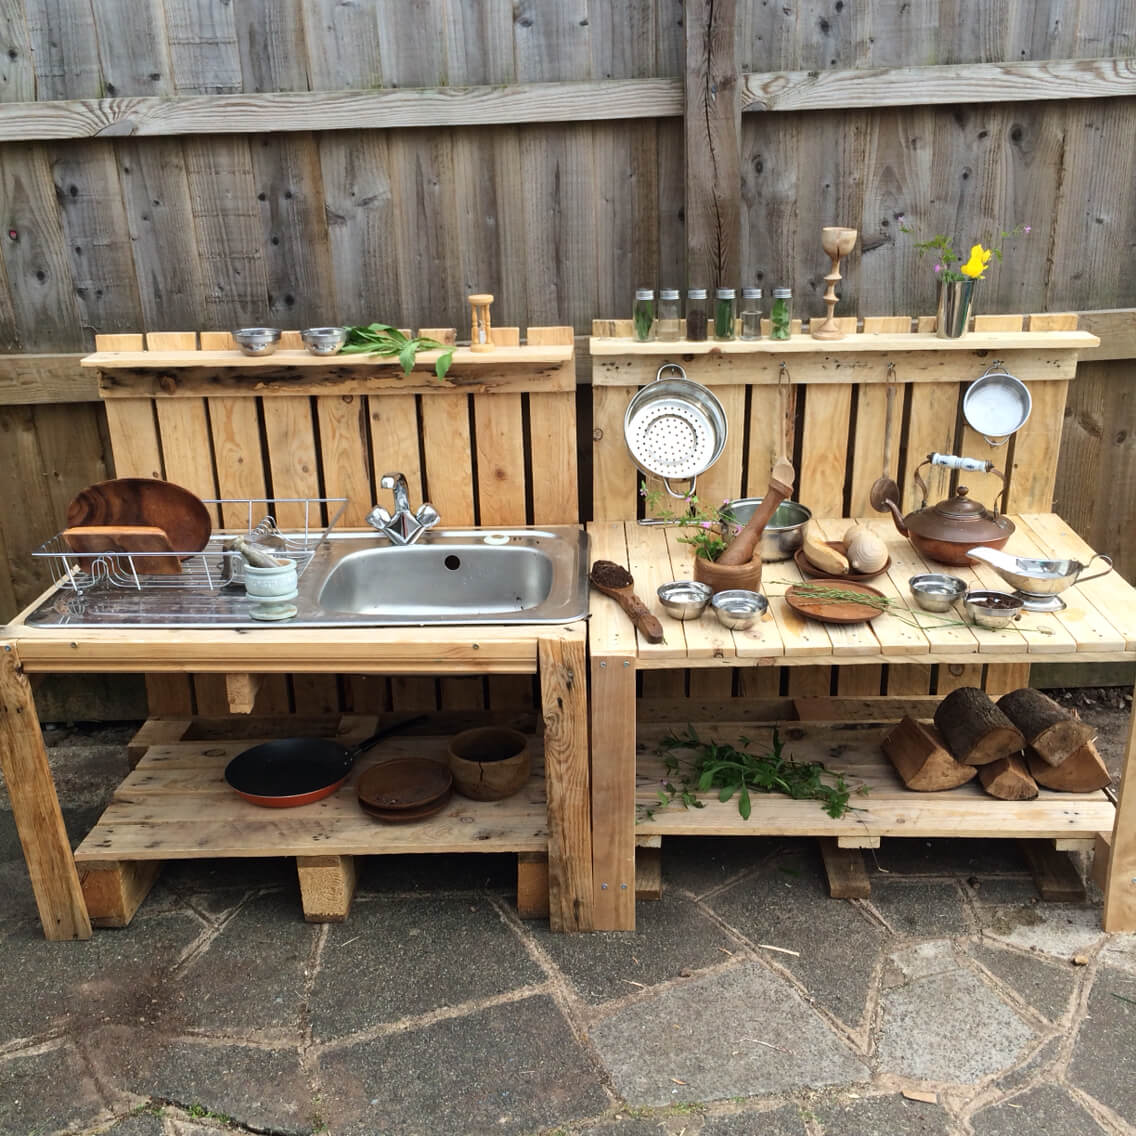 Superieur DIY Wood Pallet Sink And Prep Station